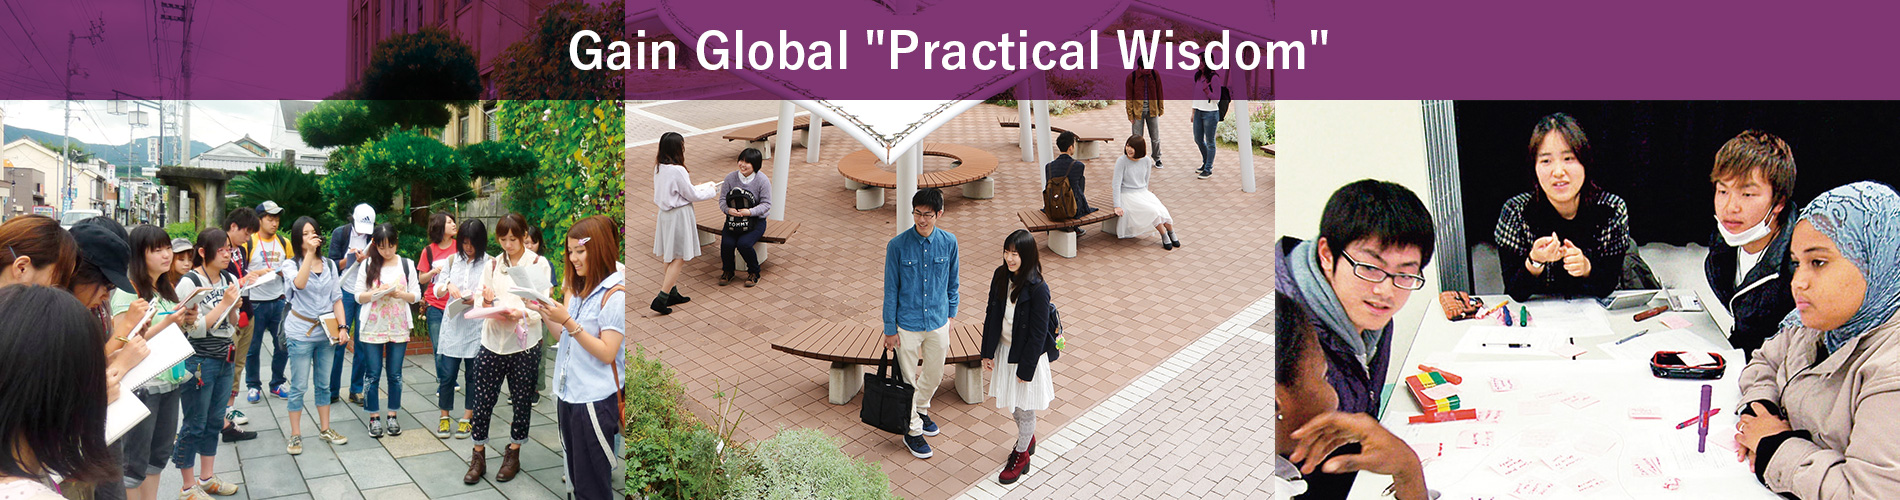 Gain Global Practical Wisdom